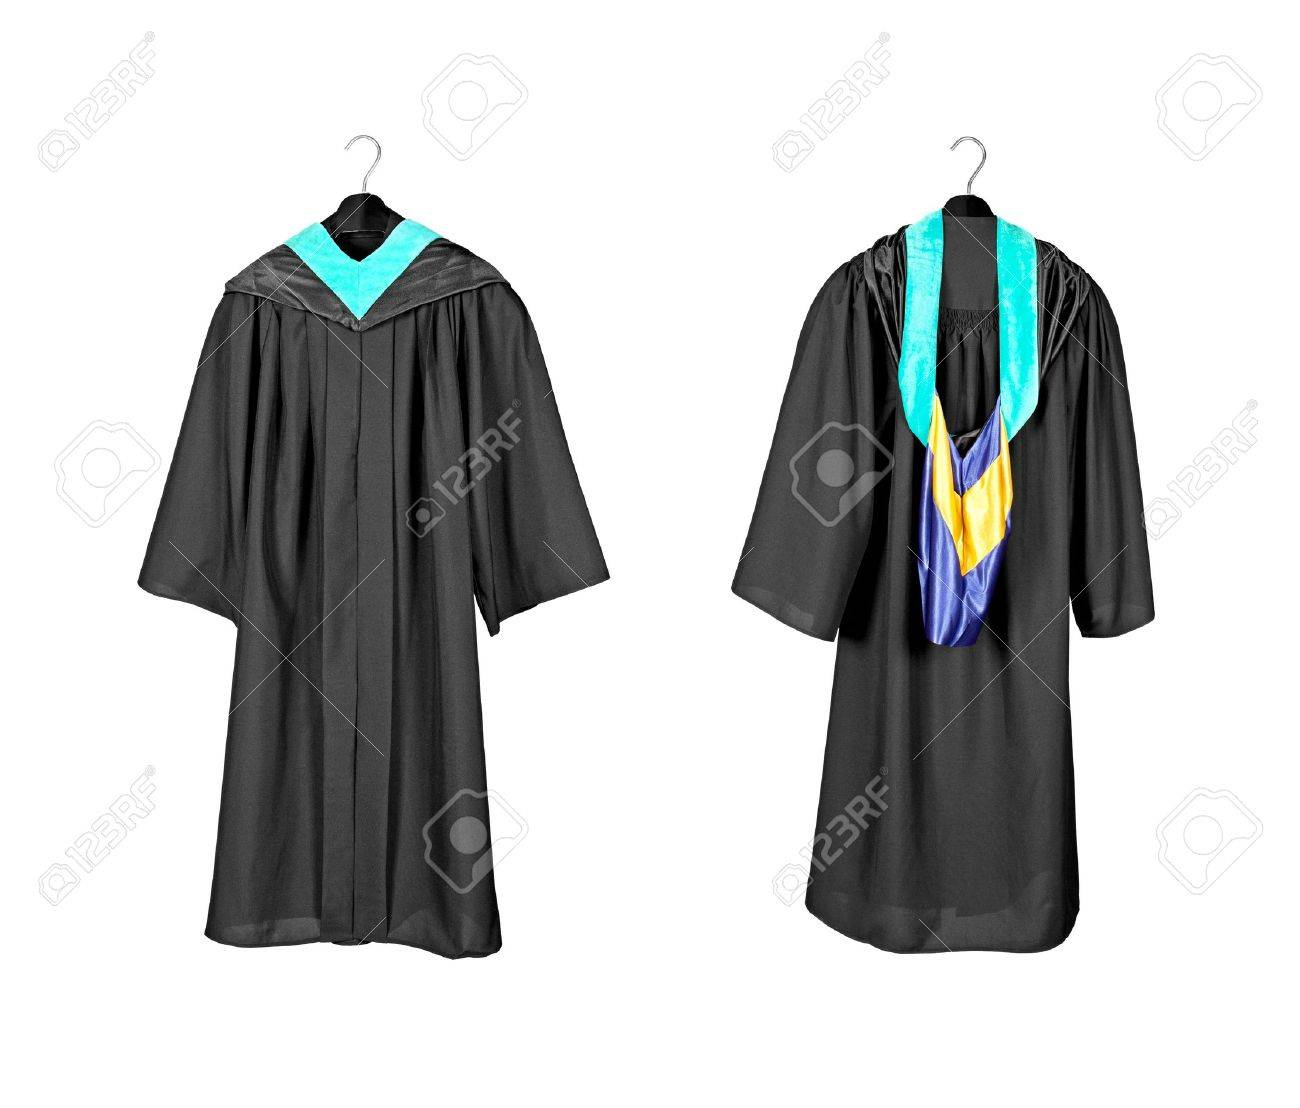 A Front And Rear View Of A Graduation Gown With Purple And Blue ...